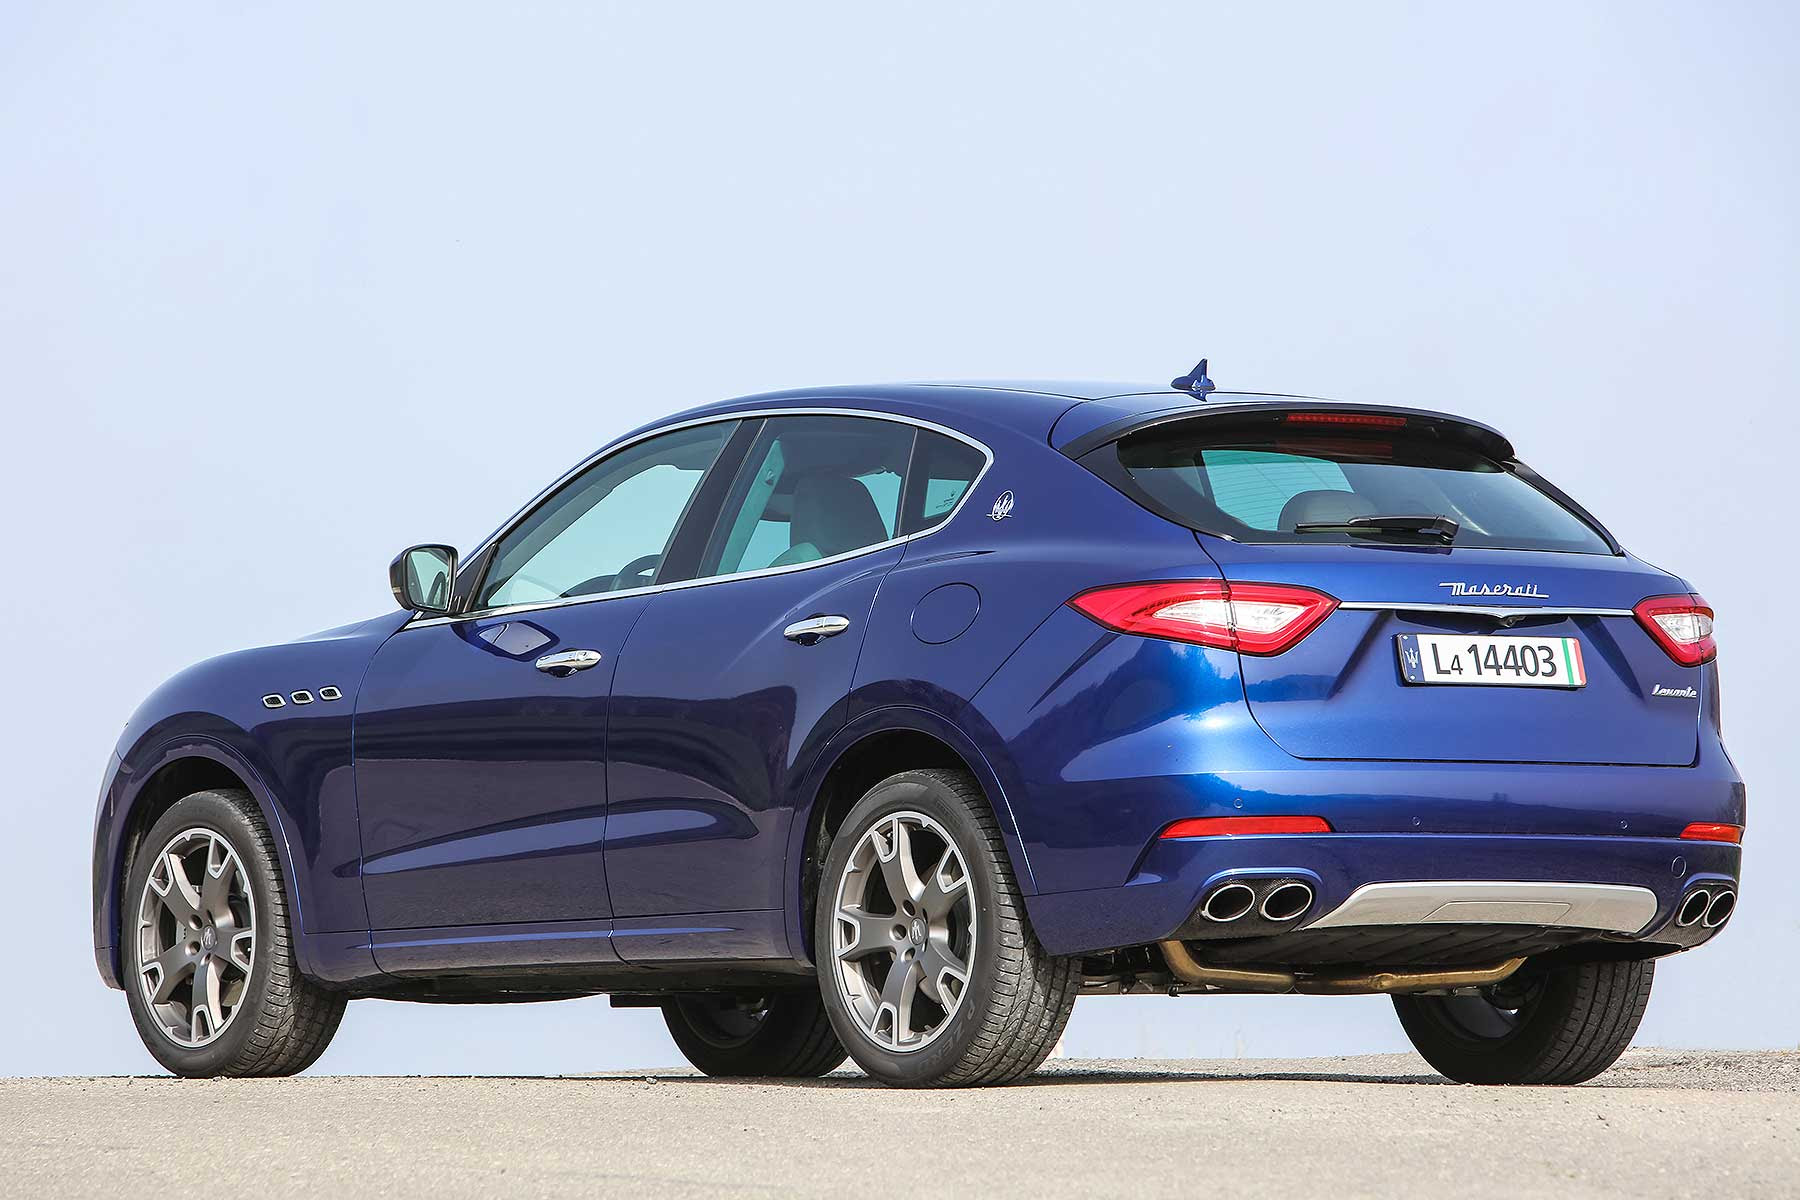 ... Levante review: can Maserati really make an SUV? | Motoring Research